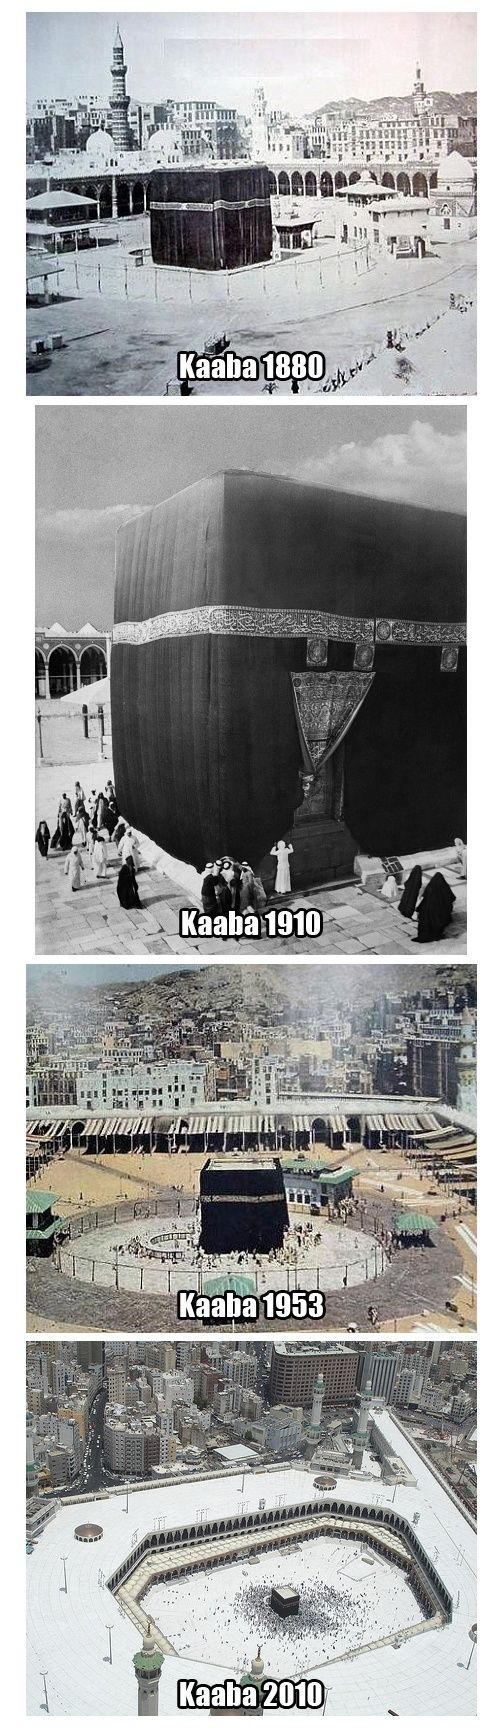 #Kaaba Timeline. May we all go there someday, Insha-Allah :) subhan Allah